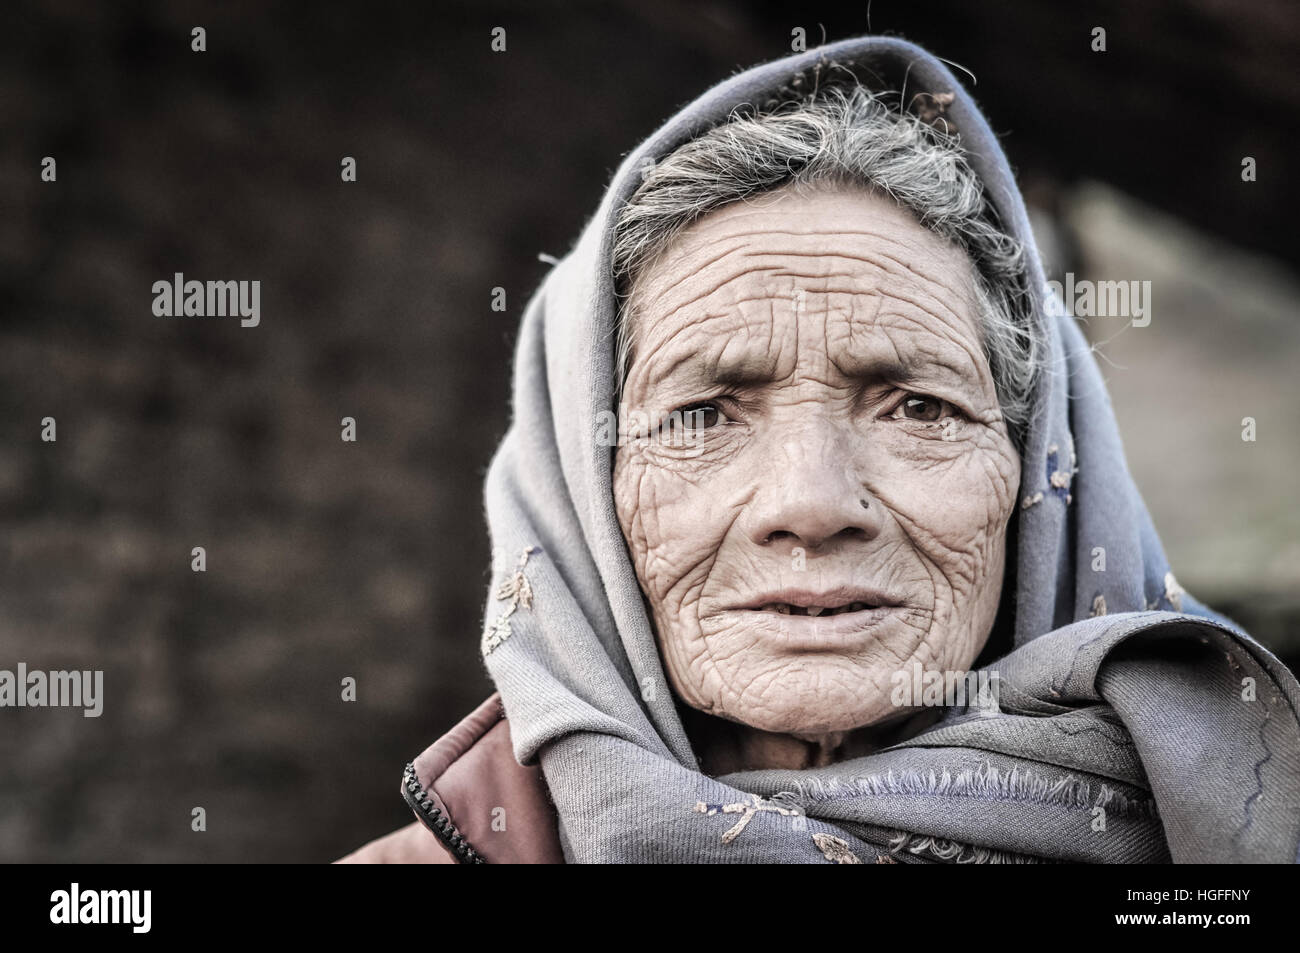 Dolpo, Nepal - circa May 2012: Old woman with wrinkles on her face and brown eyes wears grey headcloth in Dolpo, - Stock Image